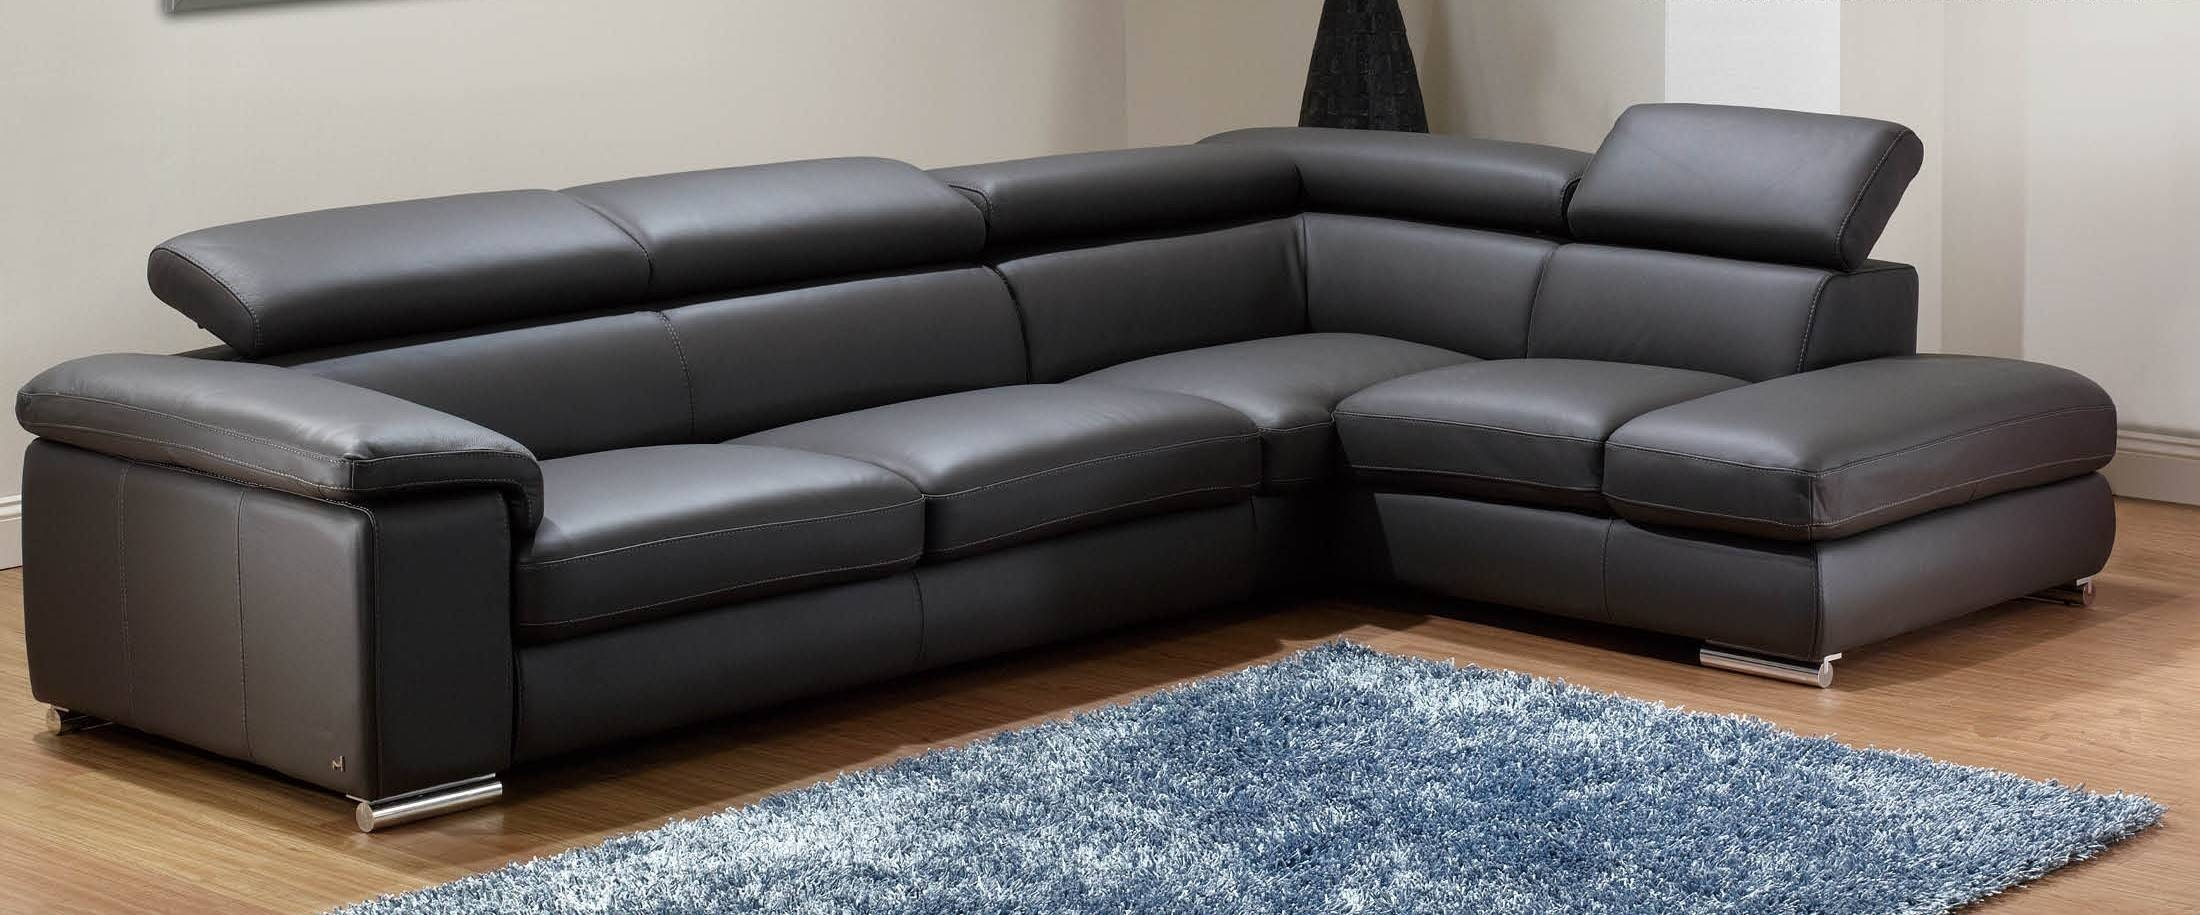 Sofas Center : Fascinating Black And White Sectional Sofas About pertaining to Black And White Sectional Sofa (Image 25 of 30)